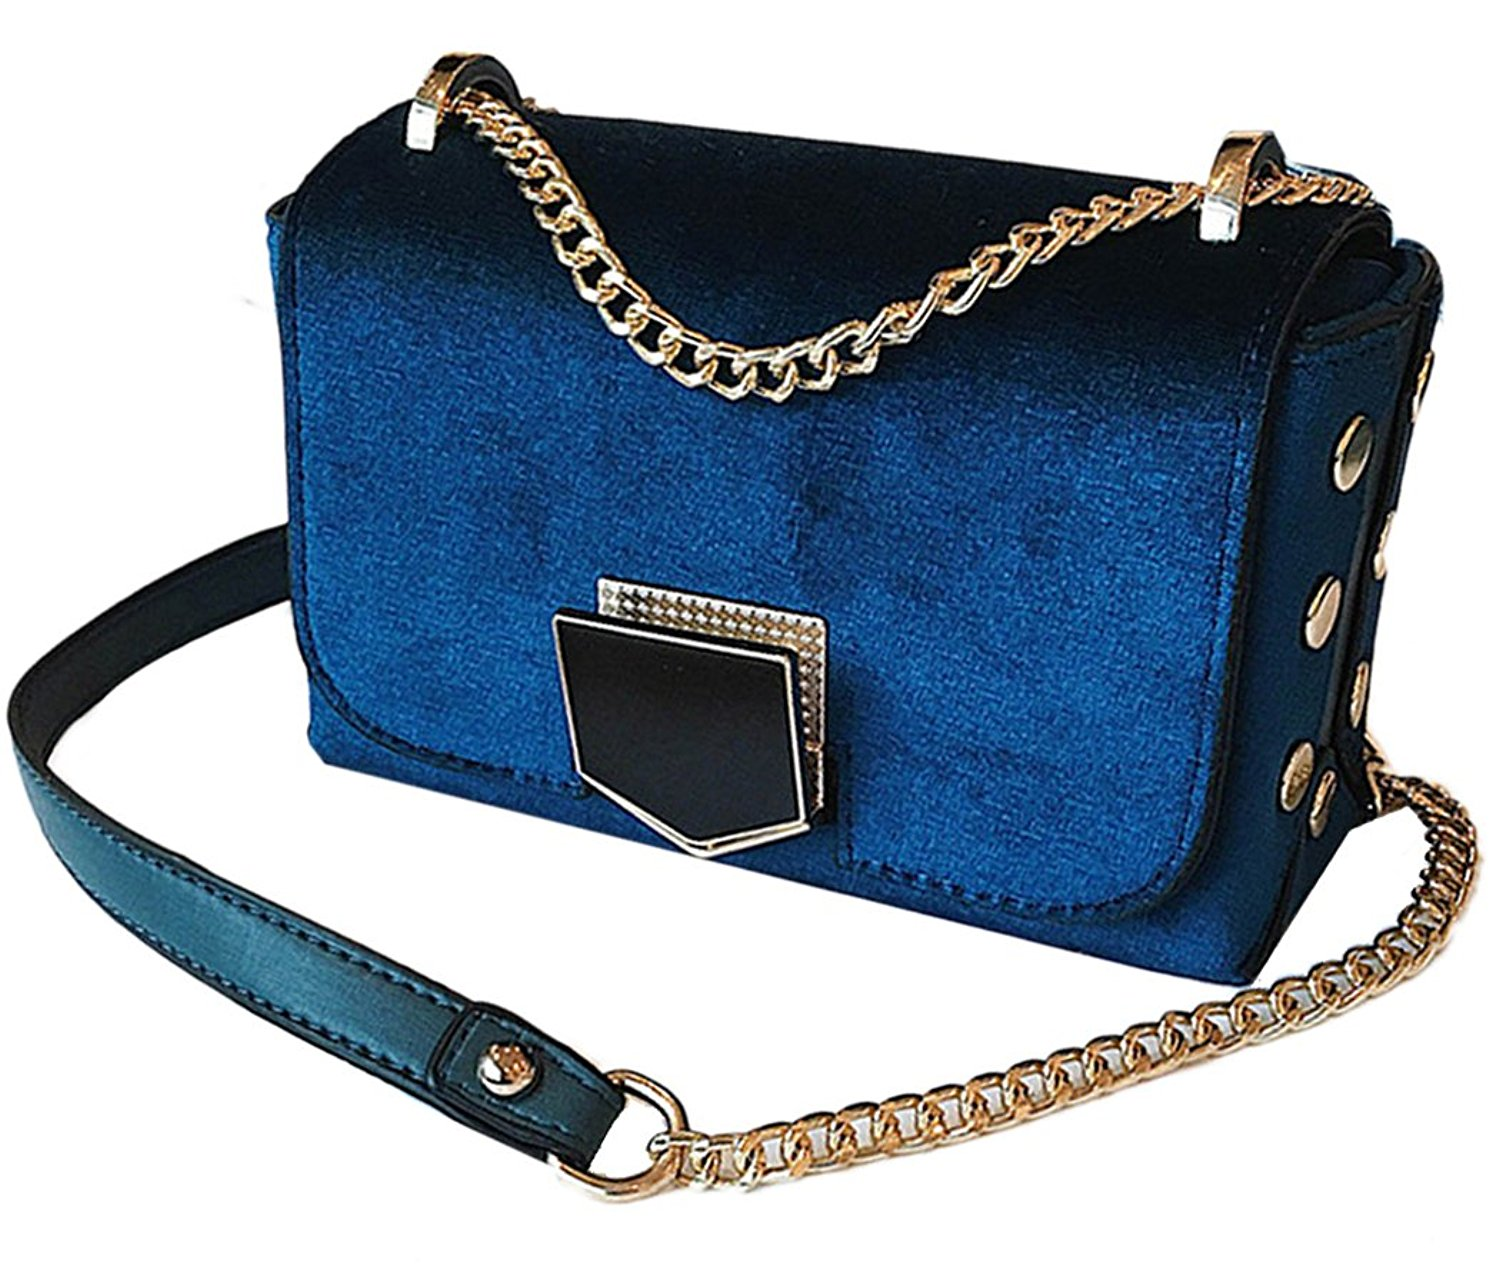 Misright Purse Chain Strap Replacement Metal Chain Handbags Strap for Clutch Wallet Satchel Tote Bags Shoulder Crossbody Bag Gold